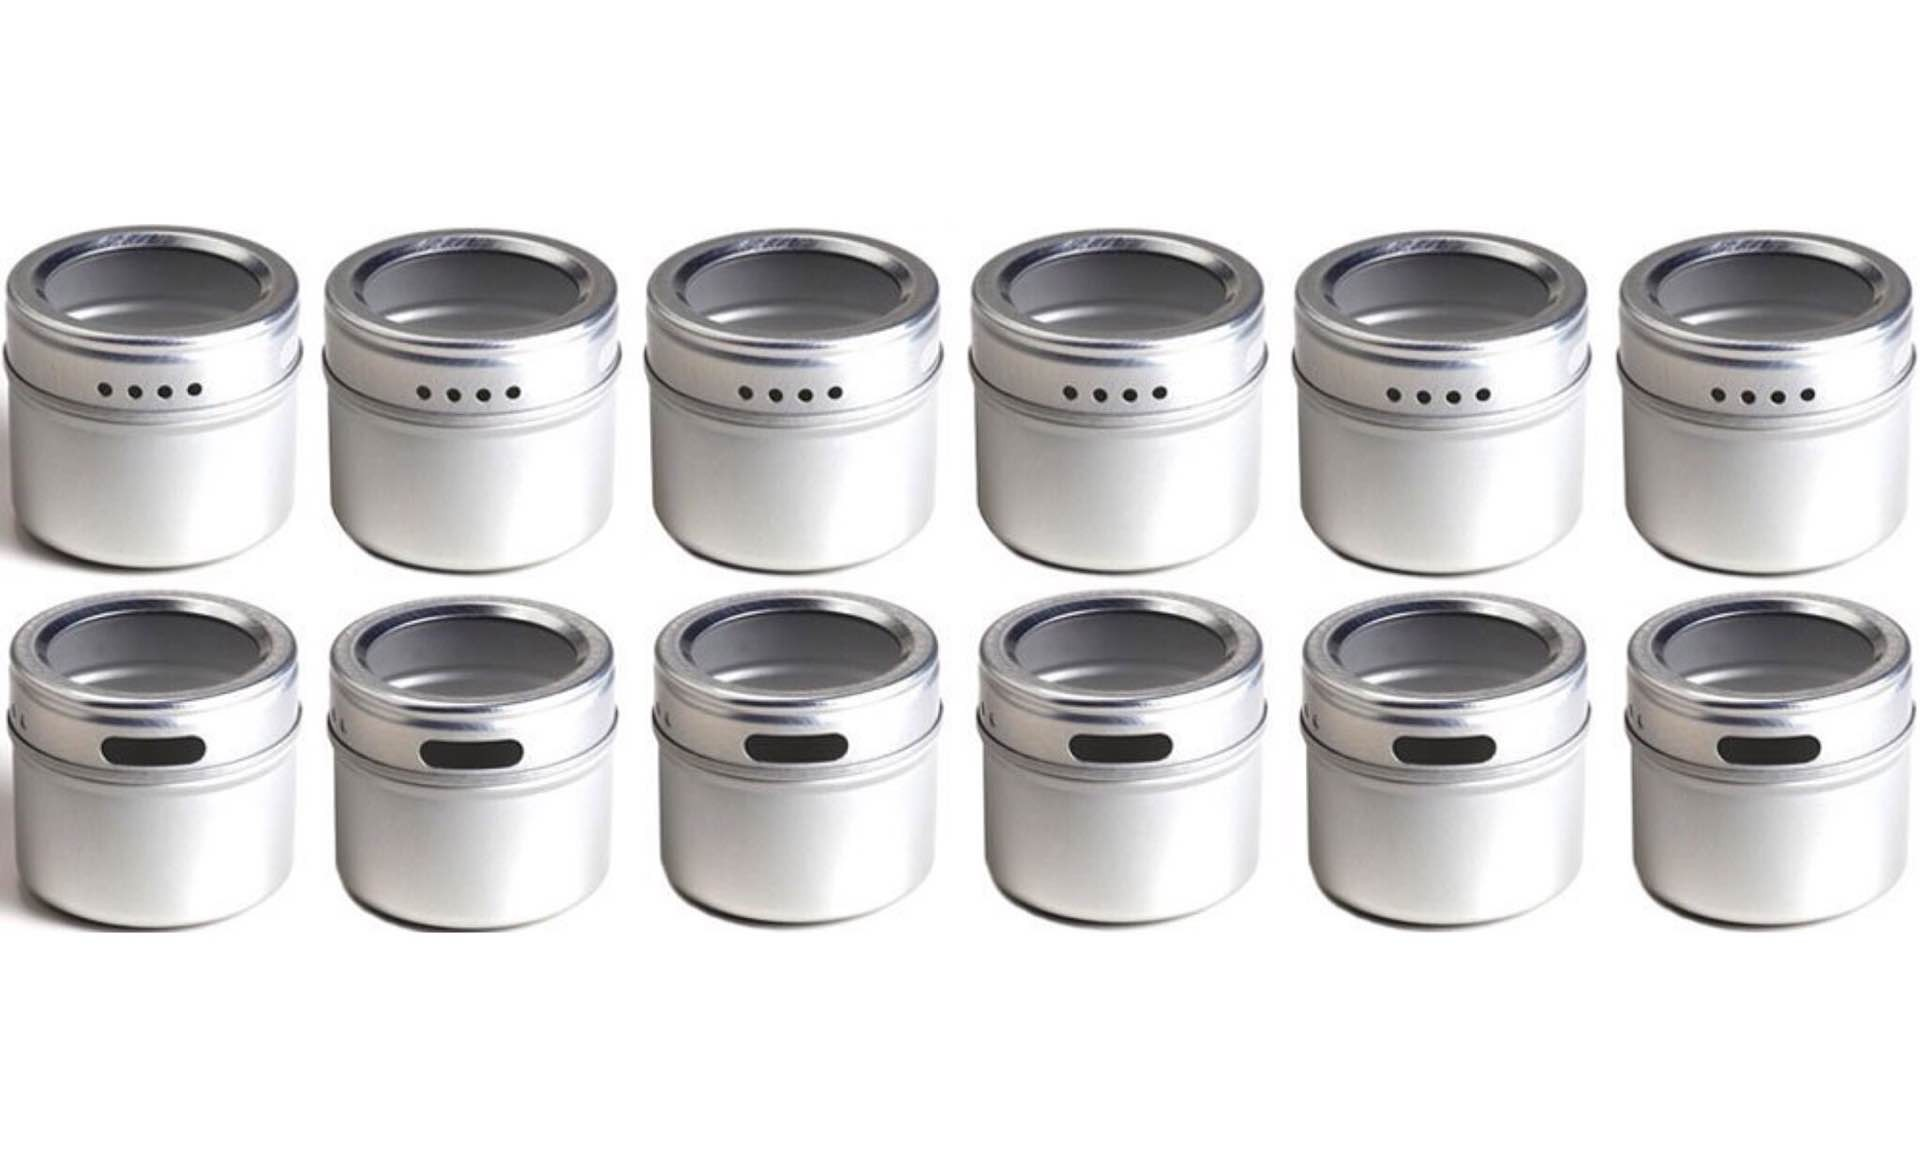 Talented Kitchen's set of 12 magnetic spice tins. ($30)